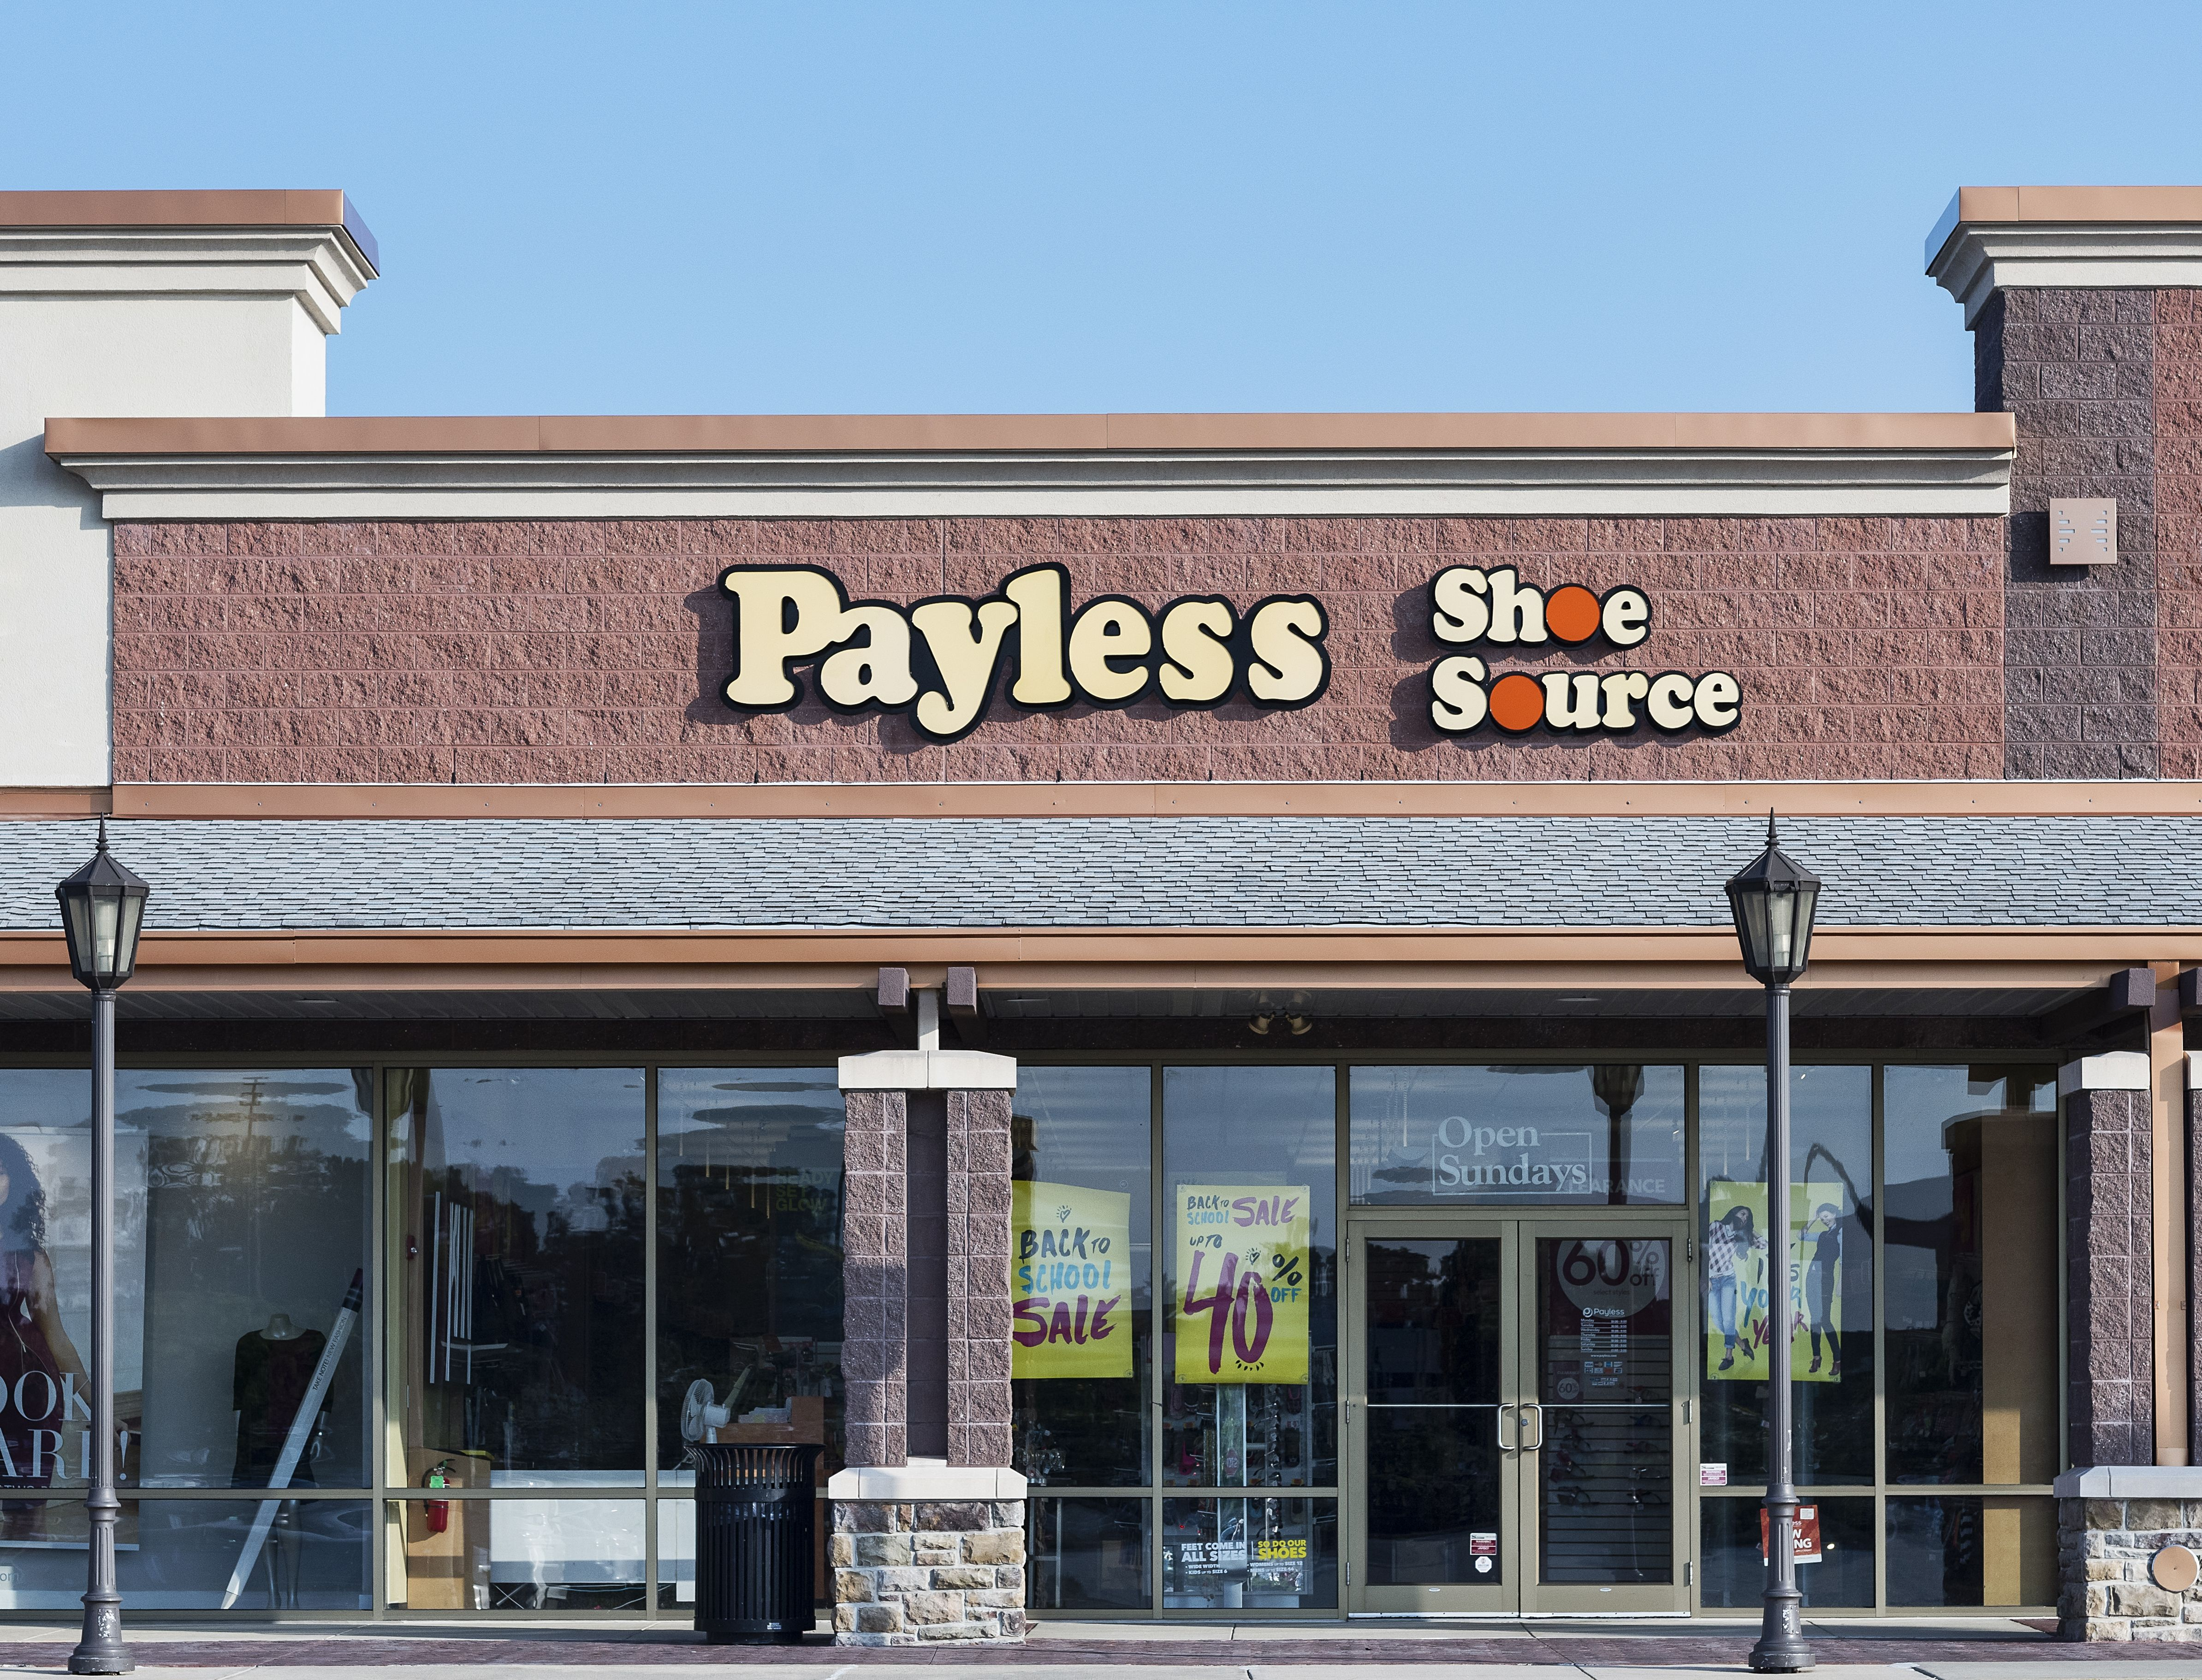 Payless Shoe Source store, Mount Laural, New Jersey, USAVarious, America